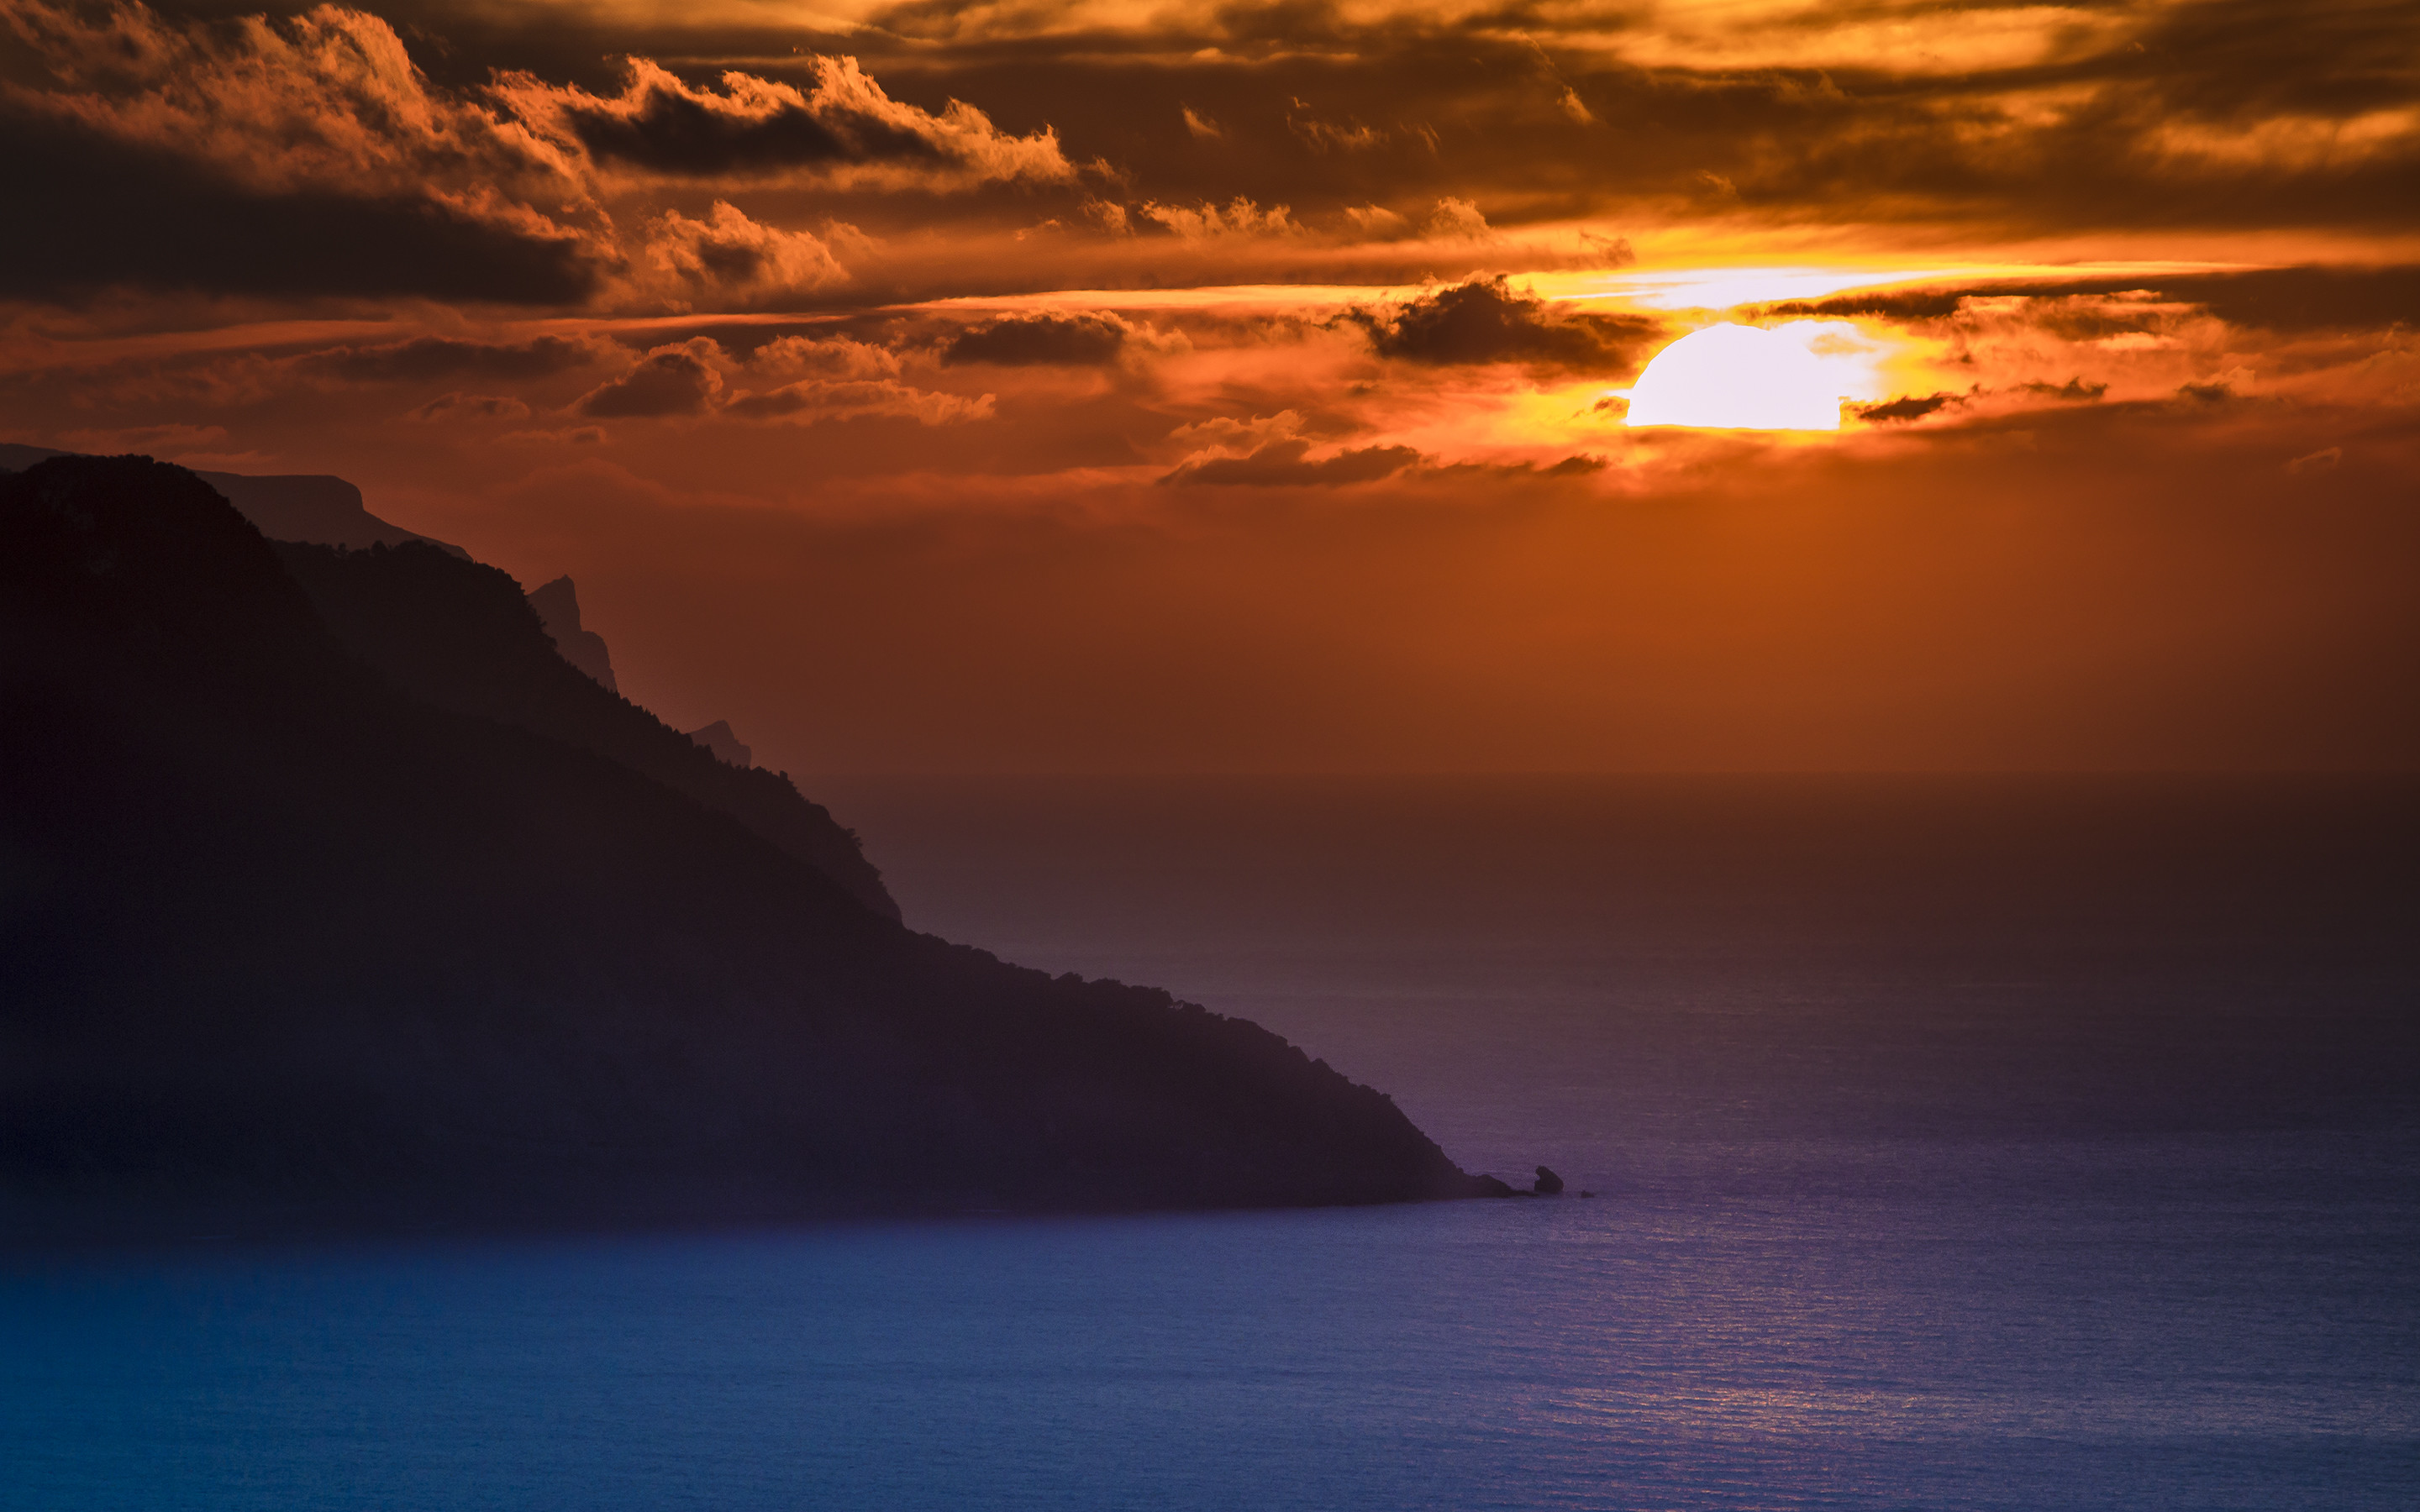 Res: 2880x1800, Author: Emmanuel Iarussi. Tags: sunset Ocean